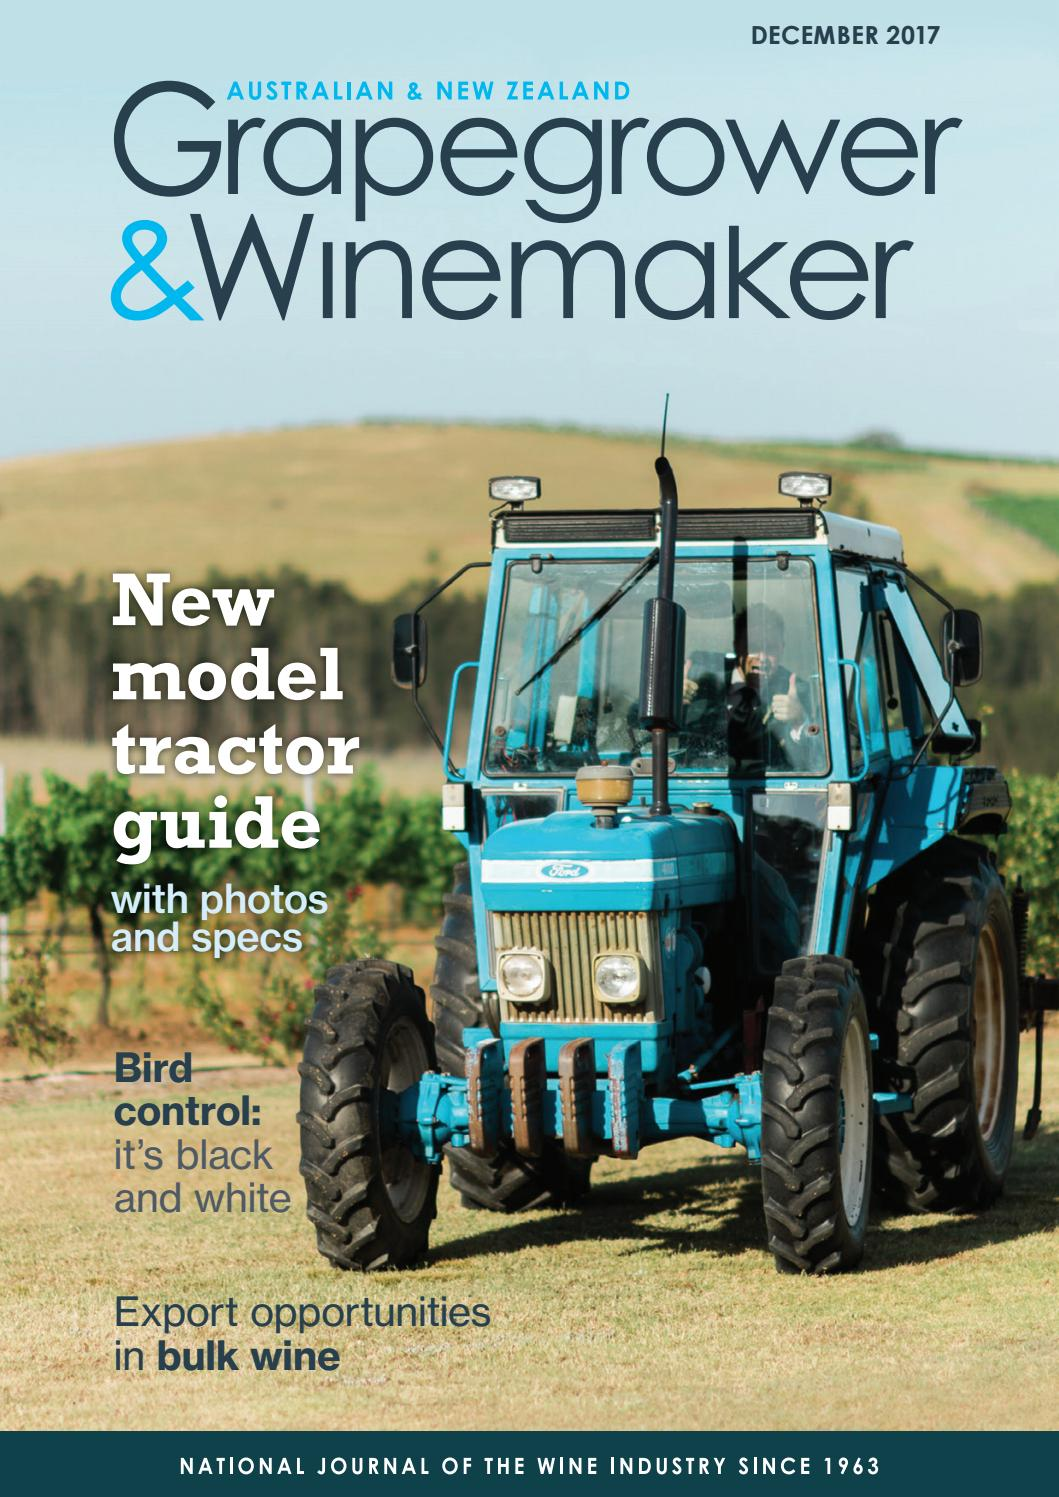 Grapegrower & Winemaker - Issue 647 - December 2017 by provincial press  group - issuu